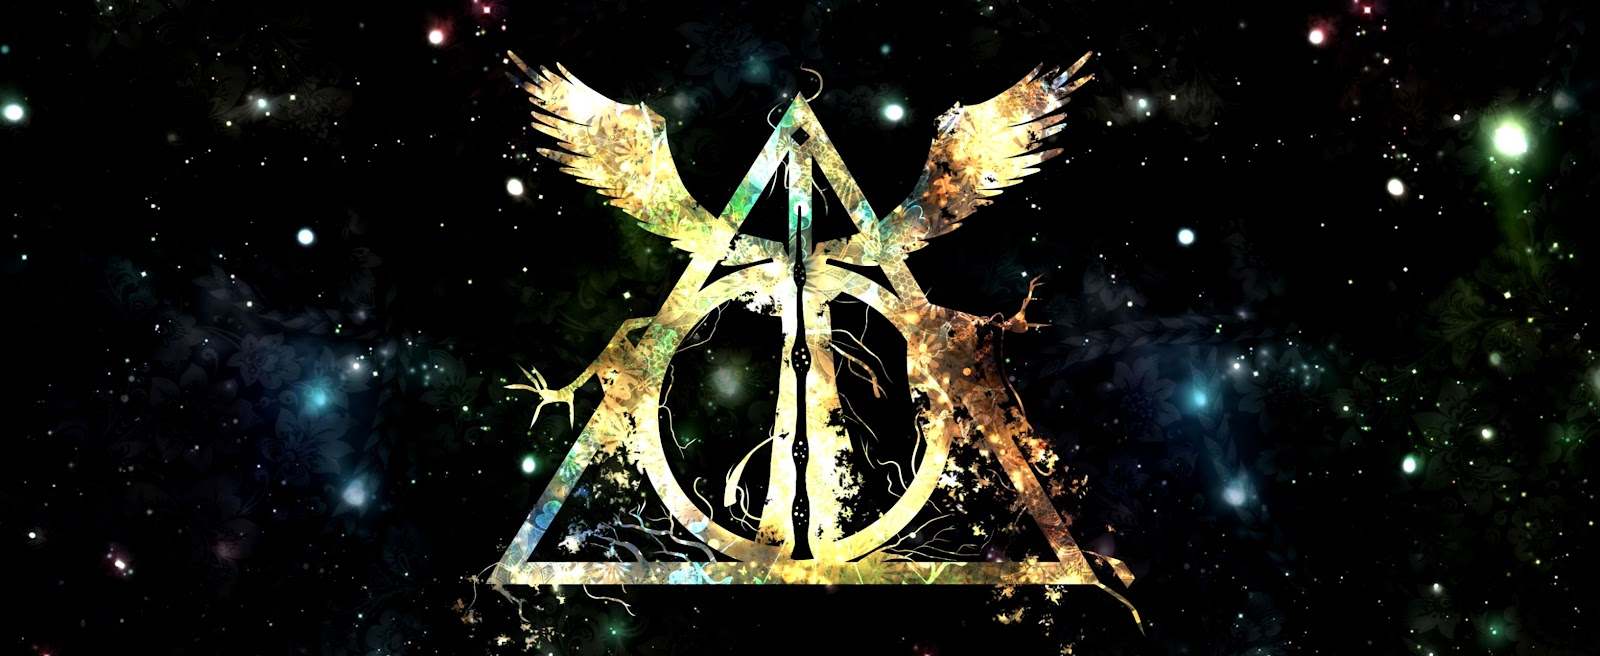 Harry Potter And The Deathly Hallows Free Download